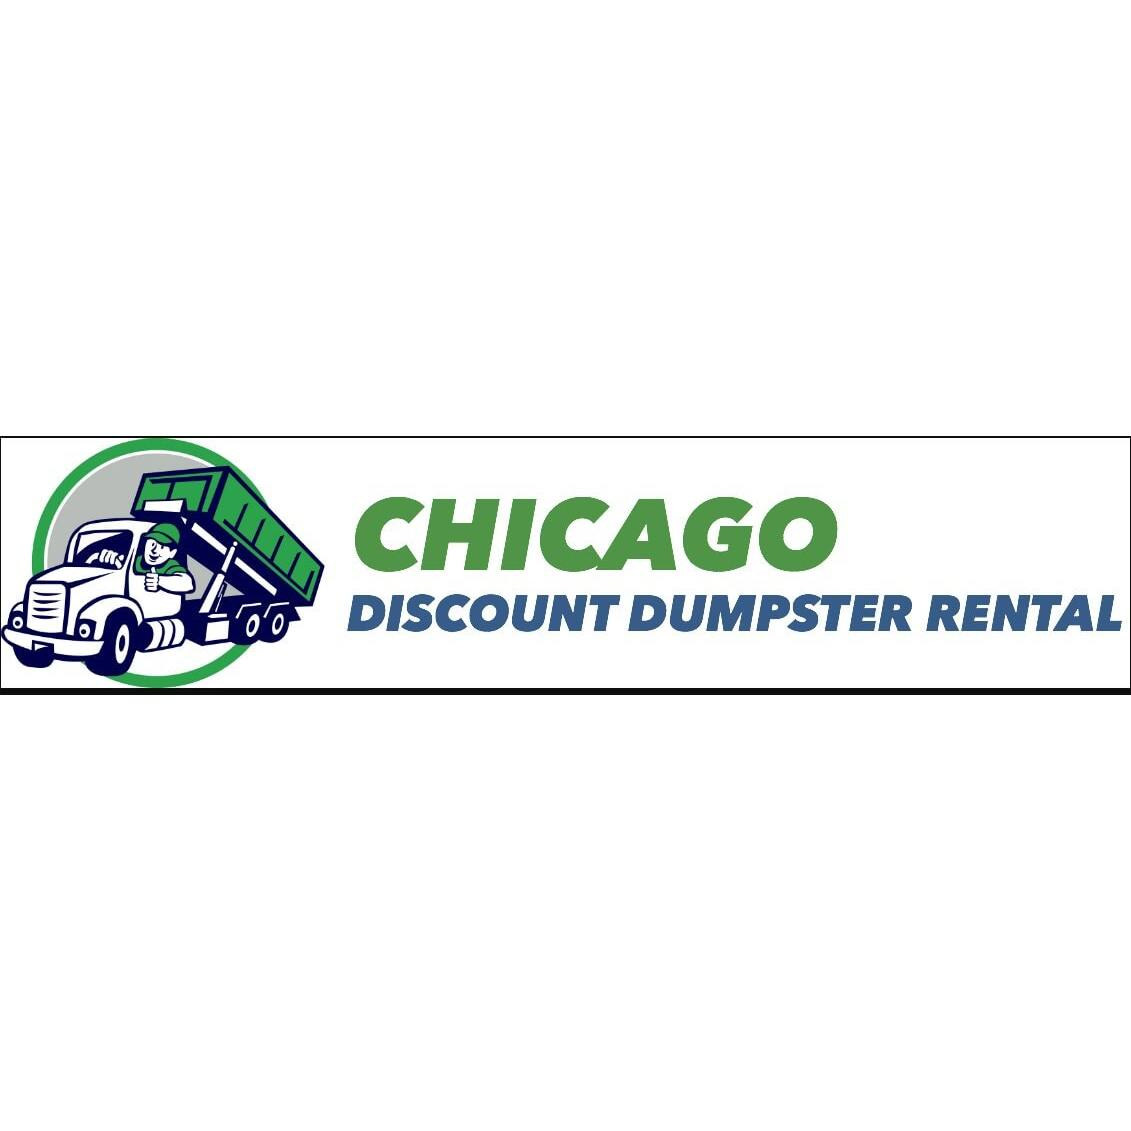 Discount Dumpster Rental Chicago